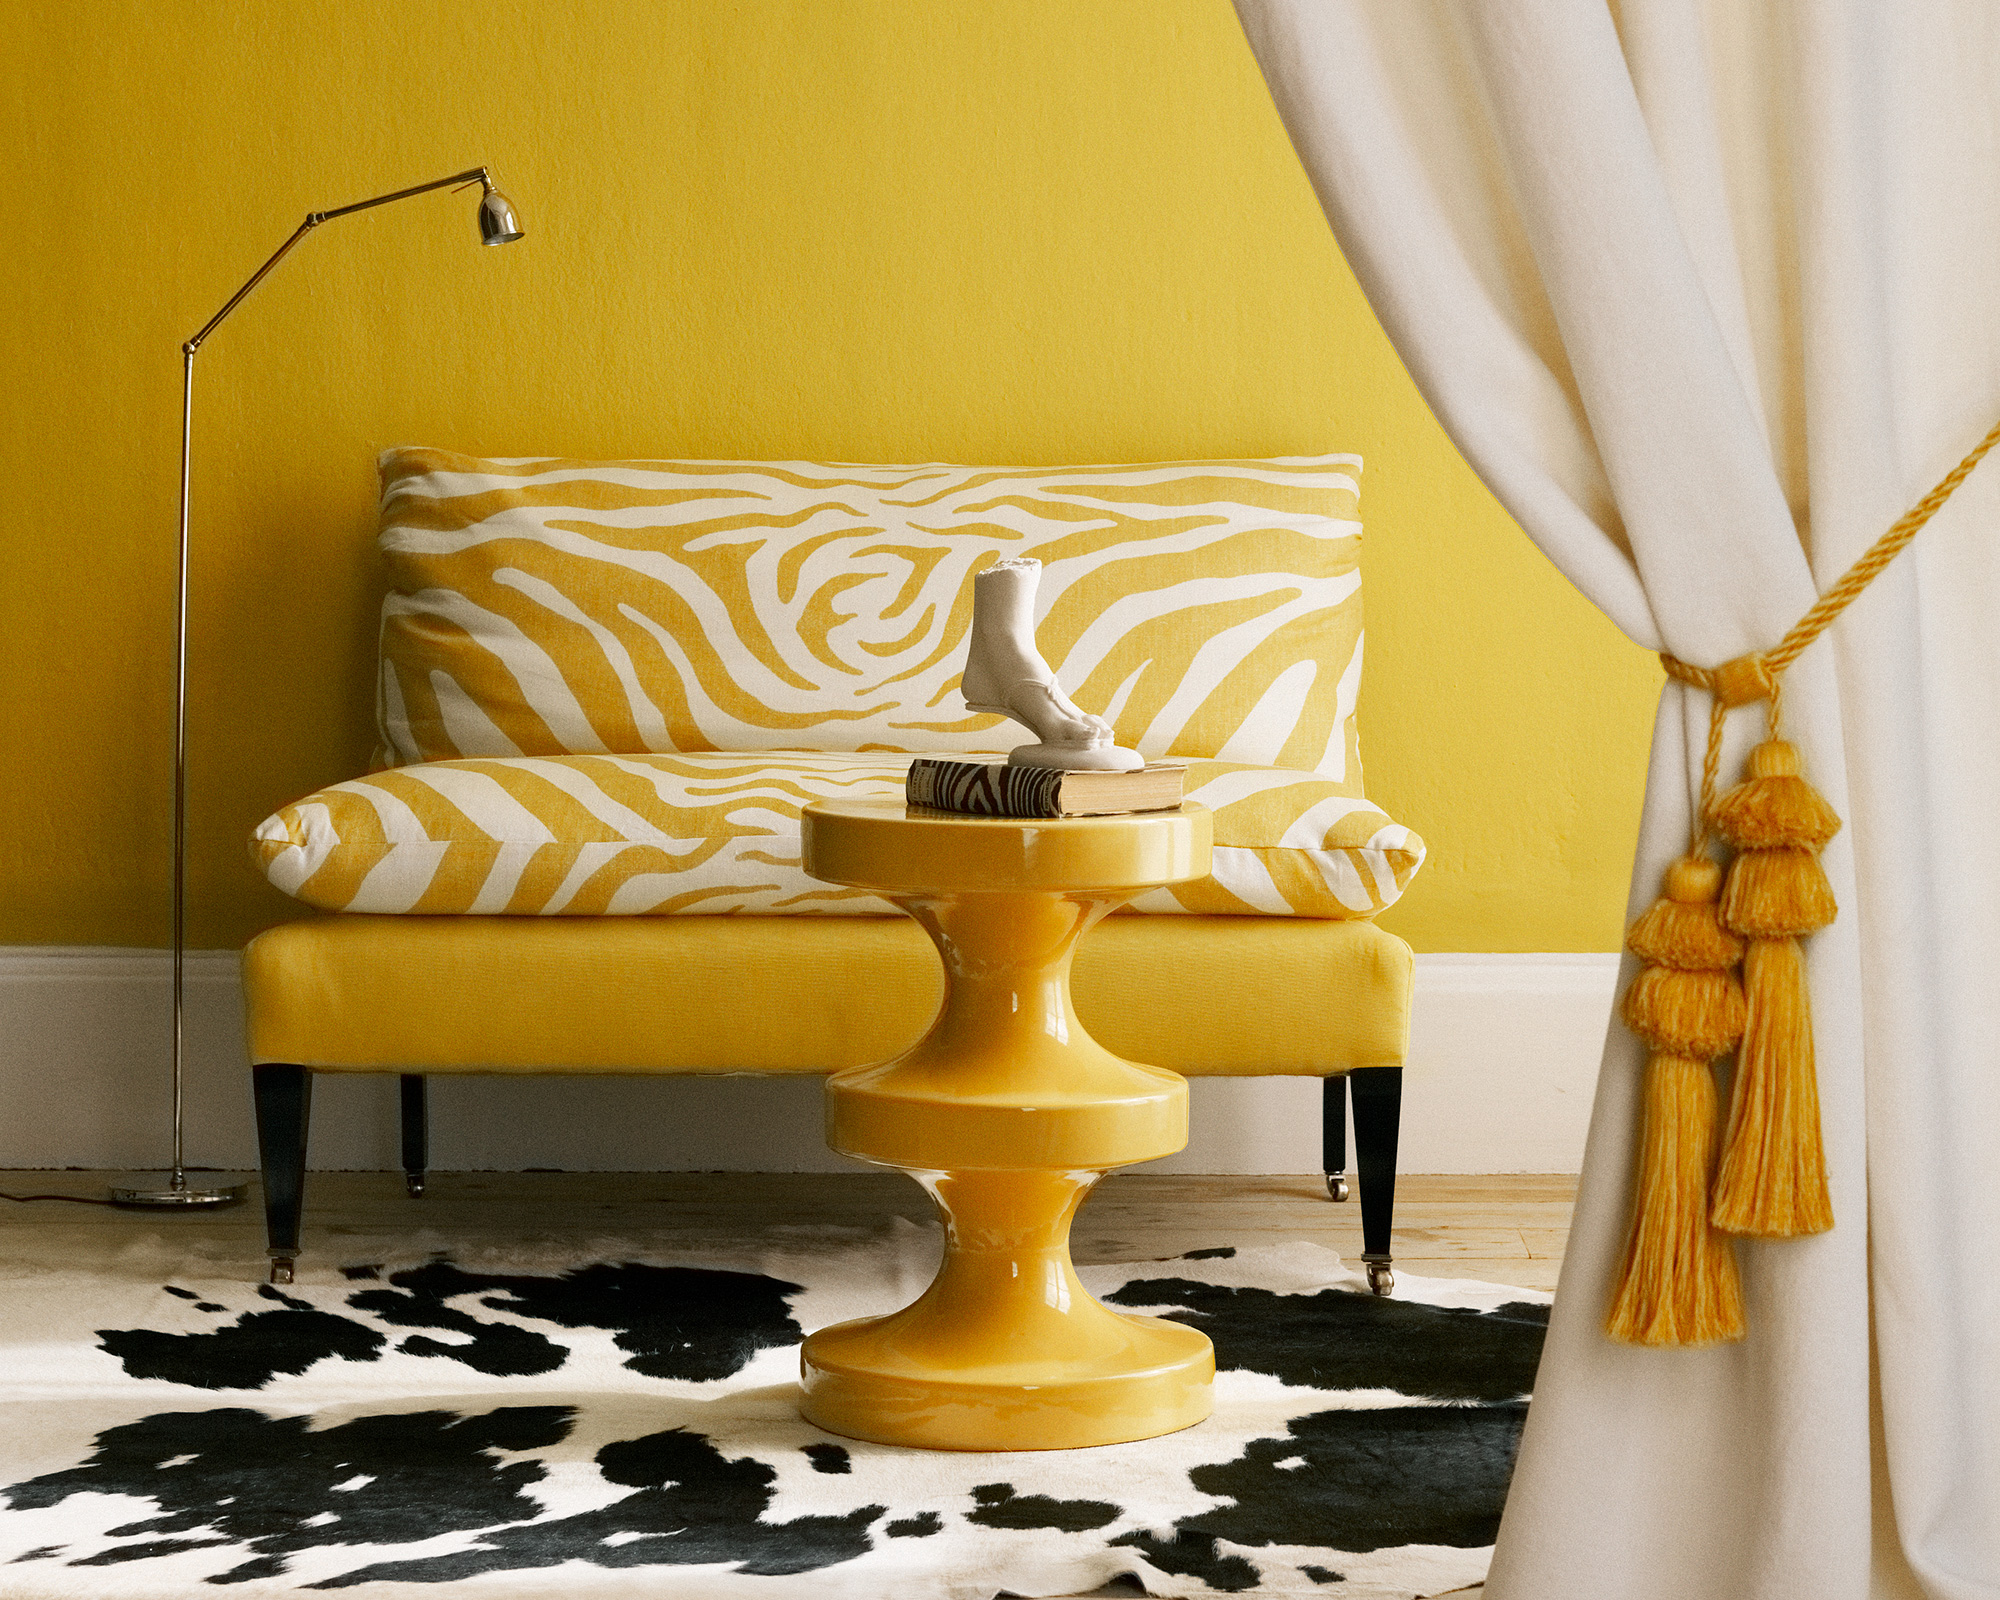 Paint Trends 2021 The Colors You Need For Wonder Walls Homes Gardens